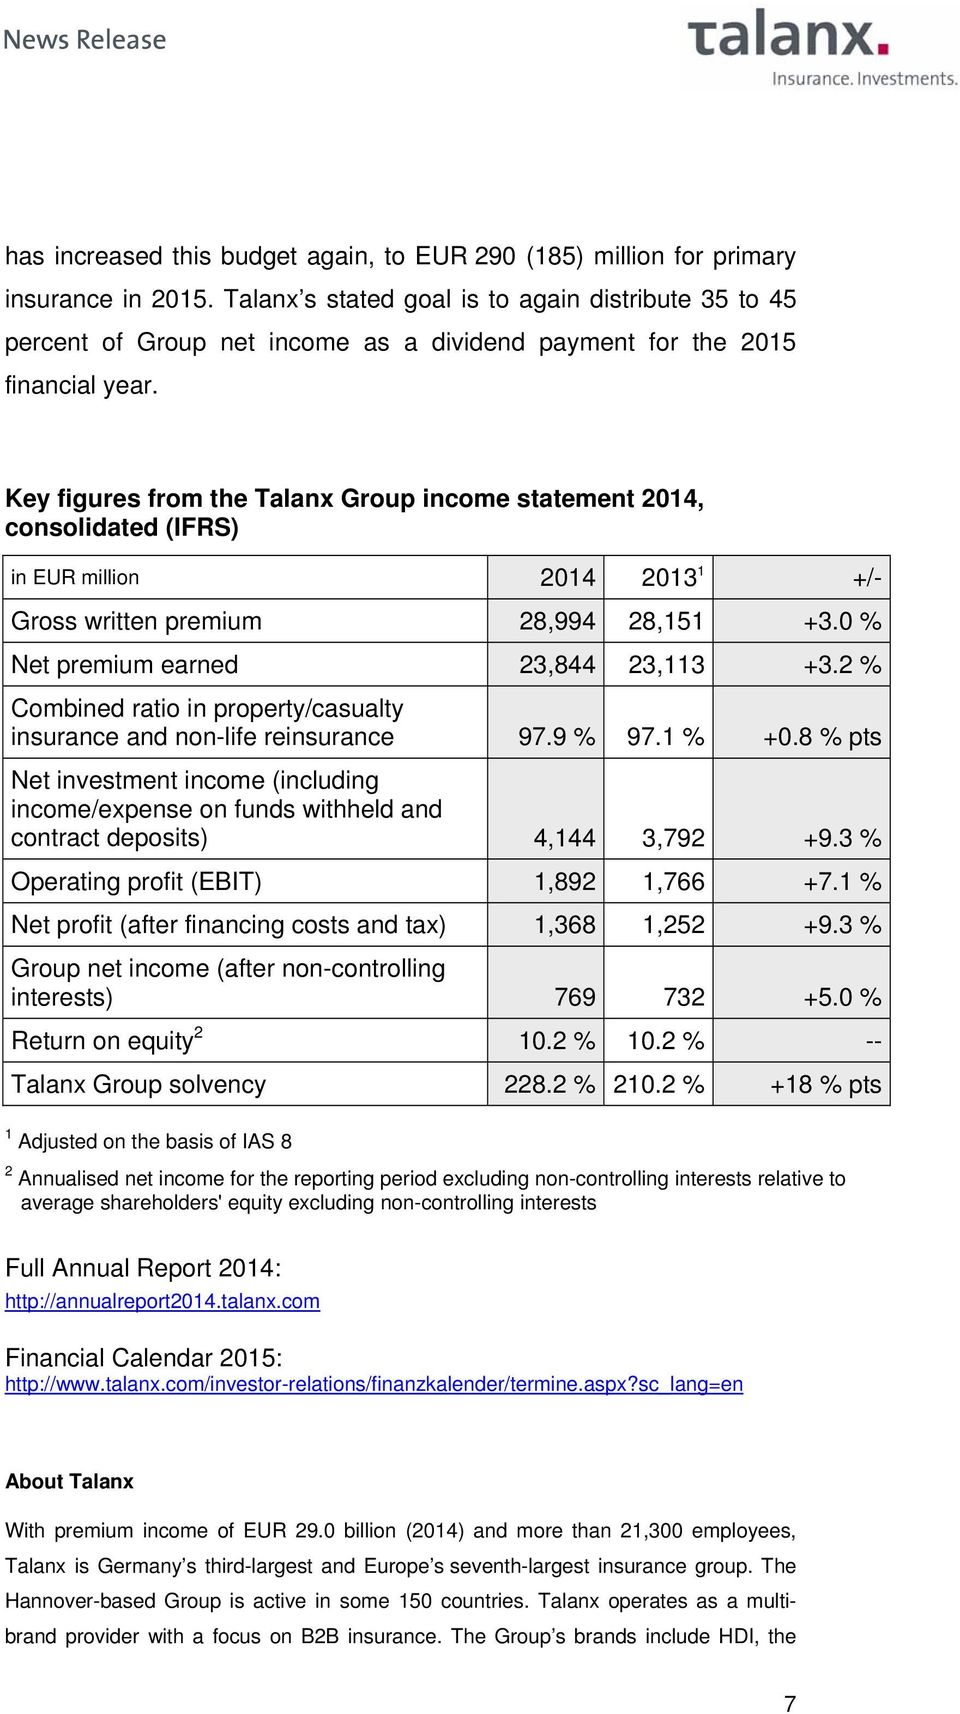 Key figures from the Talanx Group income statement 2014, consolidated (IFRS) in EUR million 2014 2013 1 +/- Gross written premium 28,994 28,151 +3.0 % Net premium earned 23,844 23,113 +3.